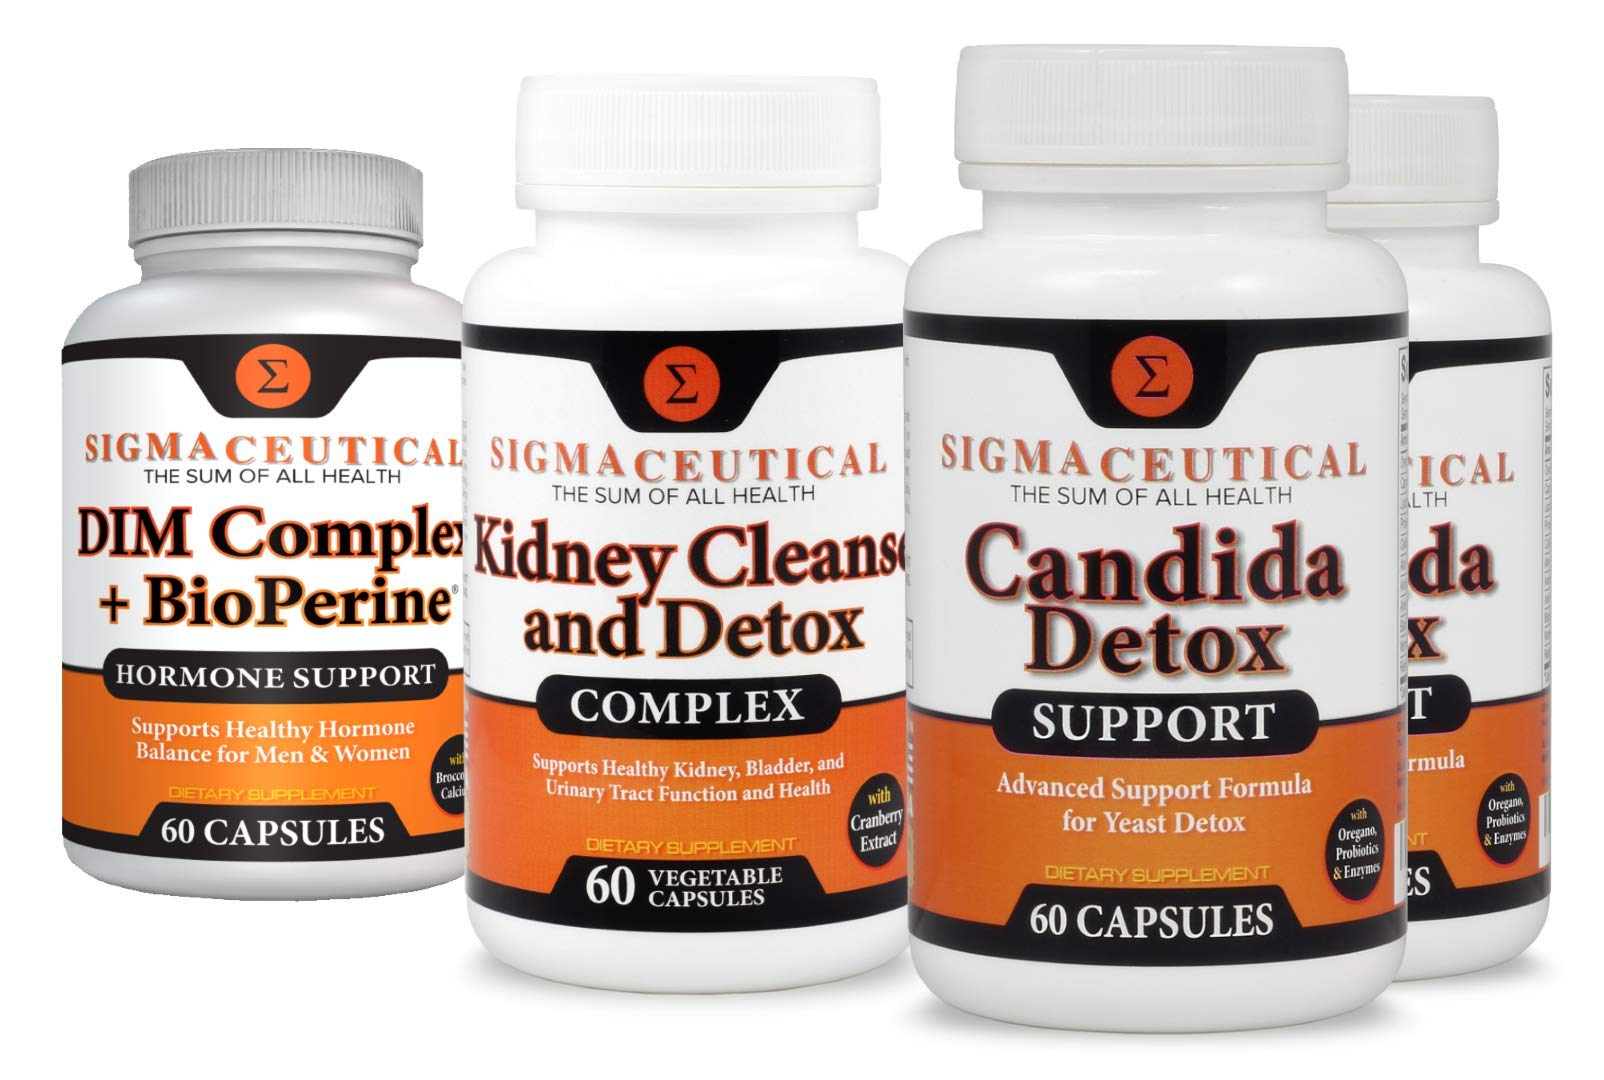 Bacterial Vaginosis Treatment - Candida & Kidney Cleanses & DIM Hormone Support- 2 Month Big Bundle by Sigmaceutical